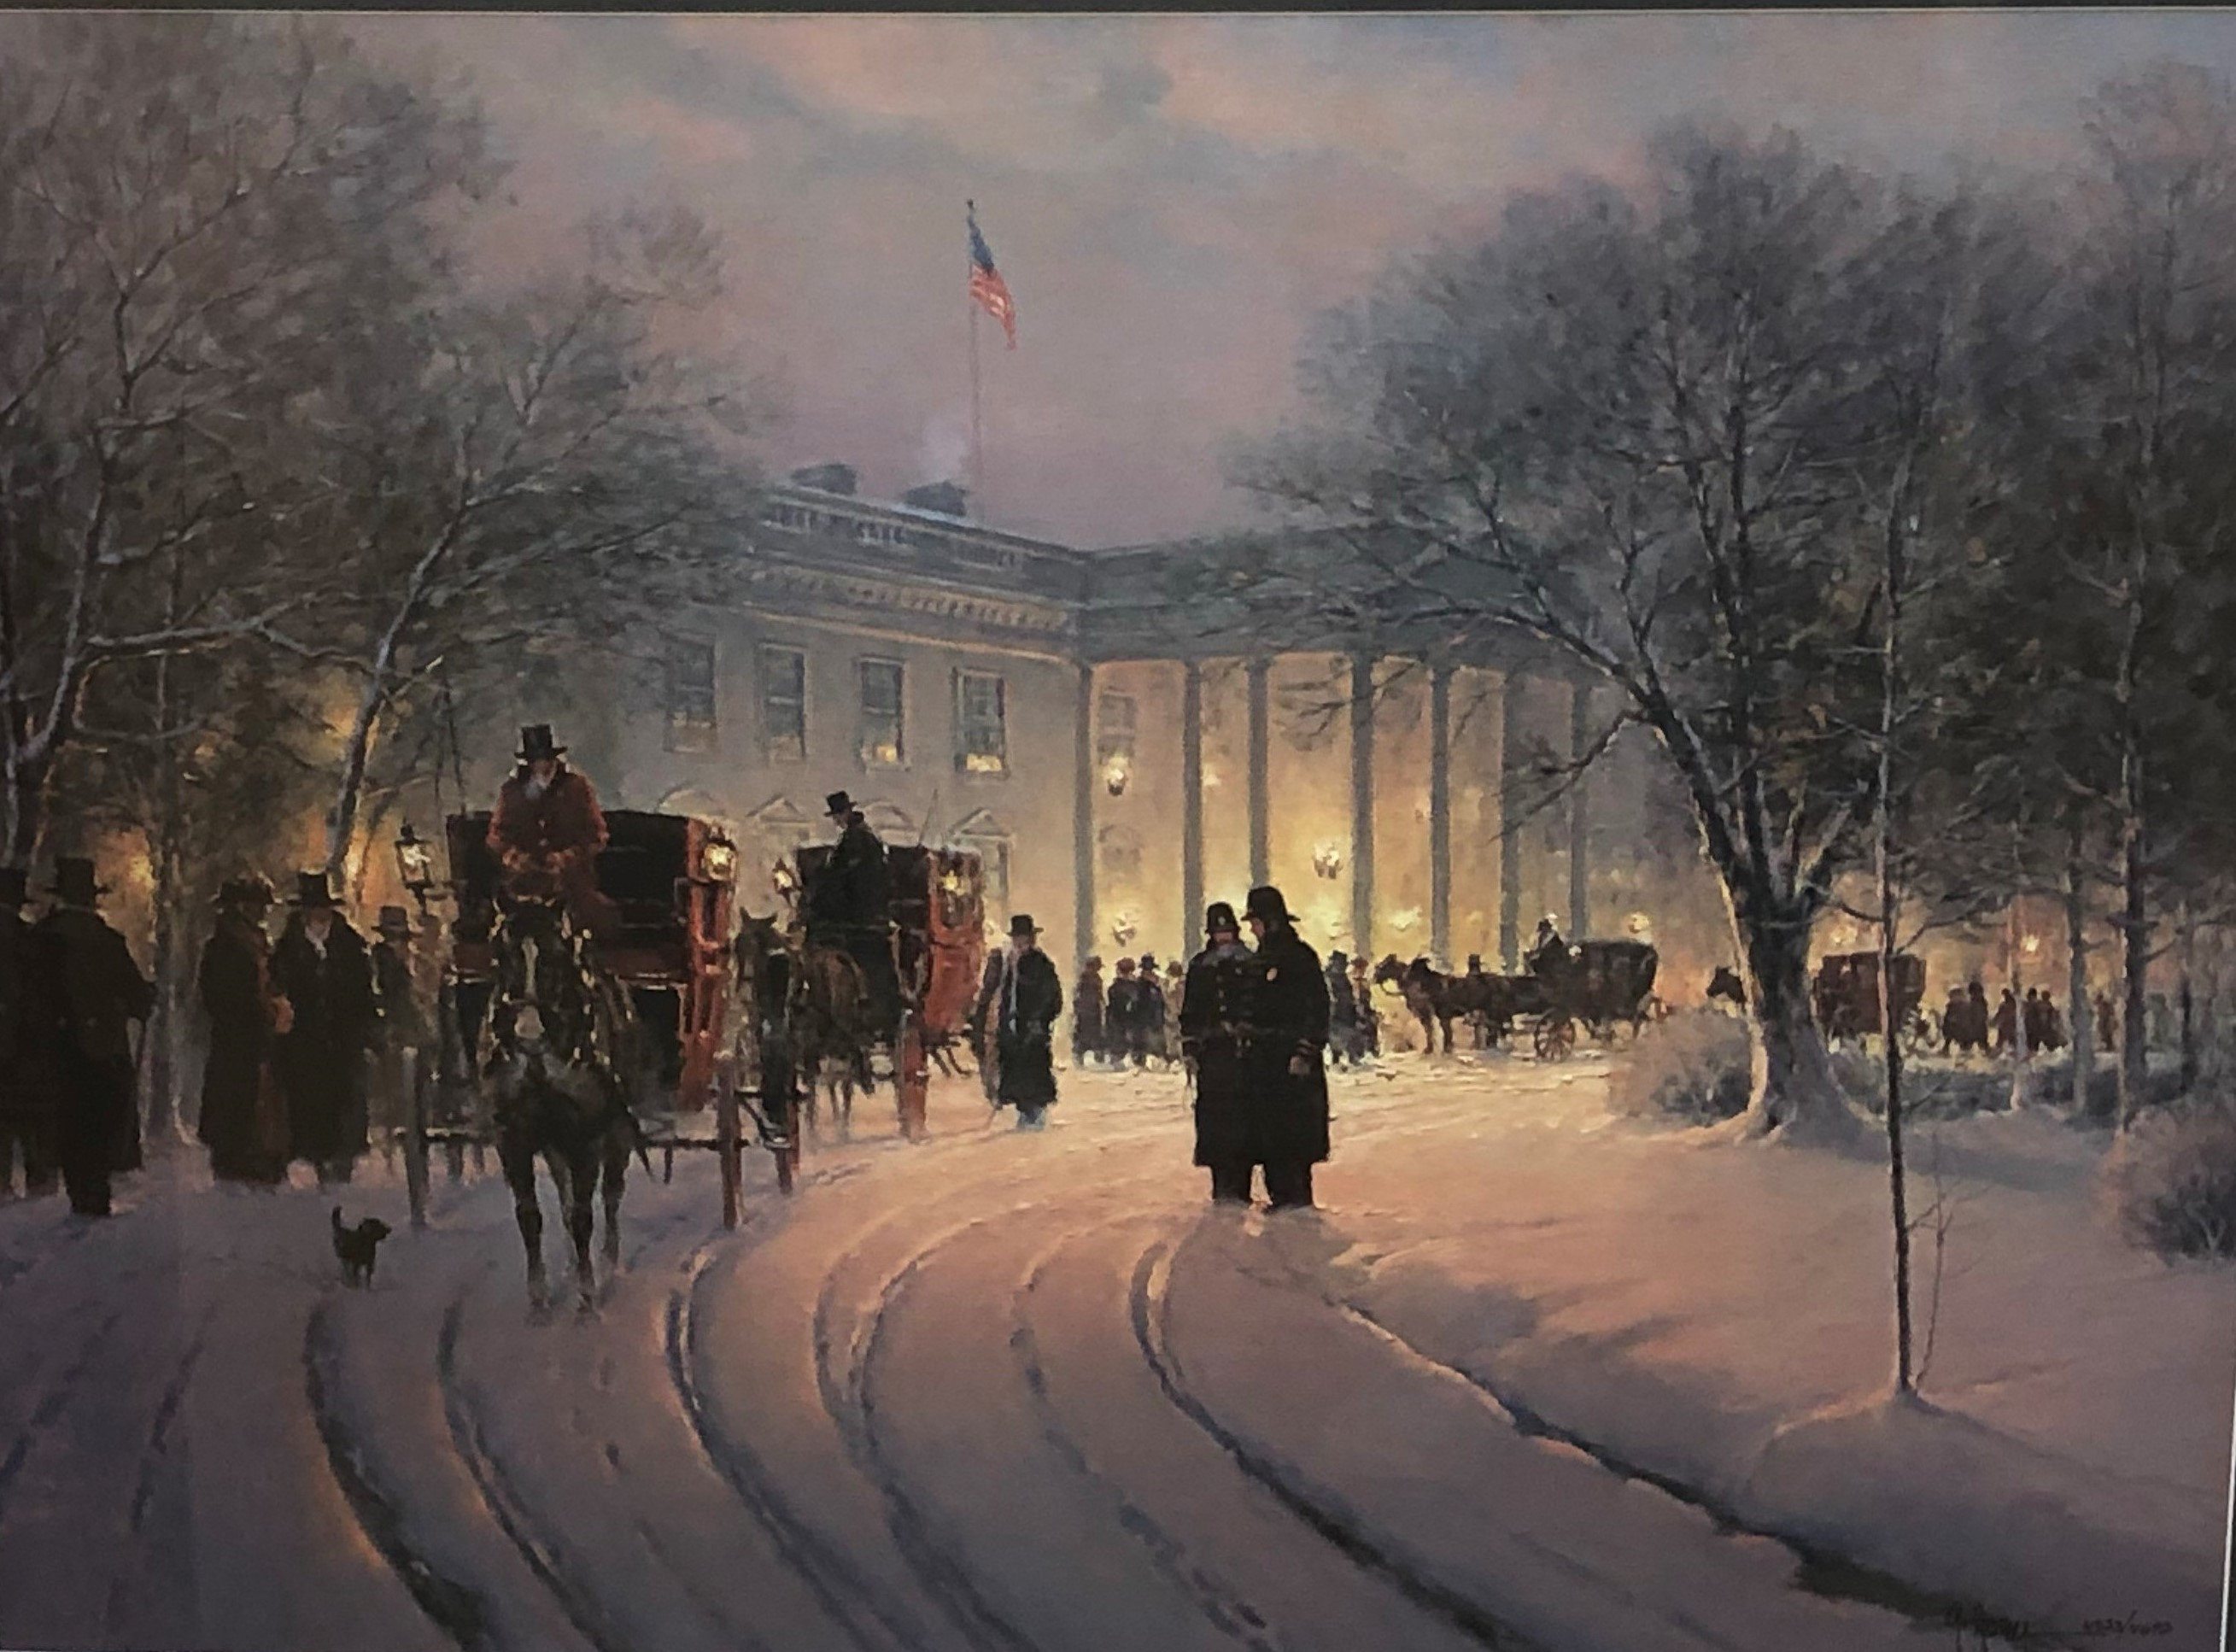 An Evening With The President artwork by G Harvey - art listed for sale on Artplode